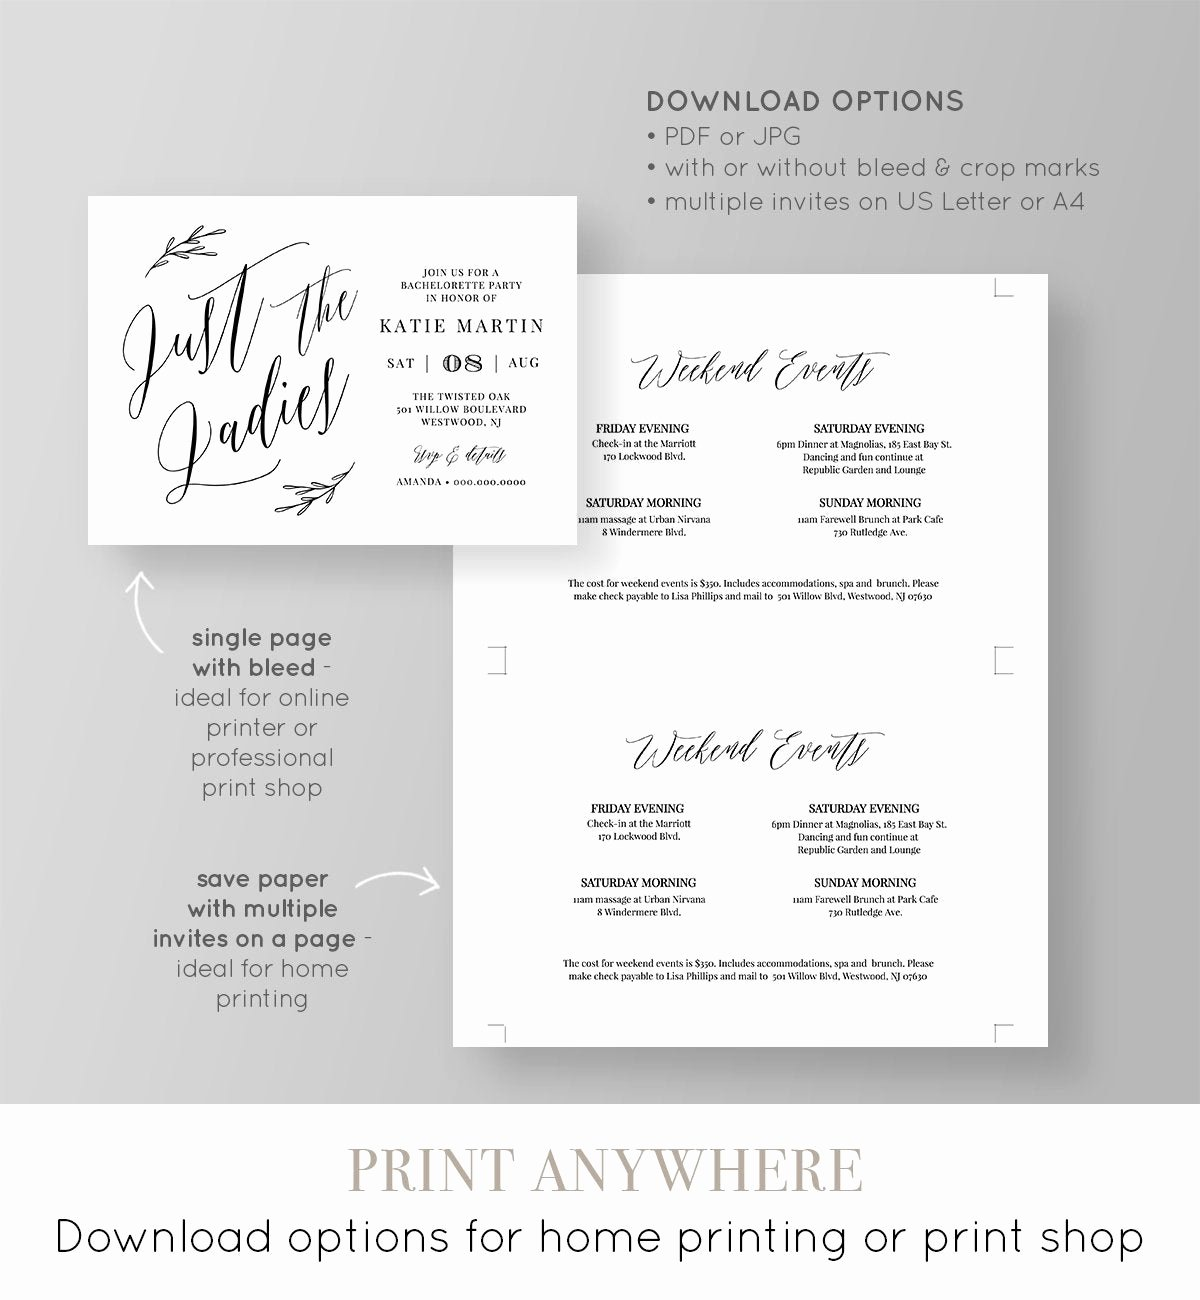 Bachelorette Party Agenda Template Best Of Bachelorette Party Invitation & Itinerary Instant